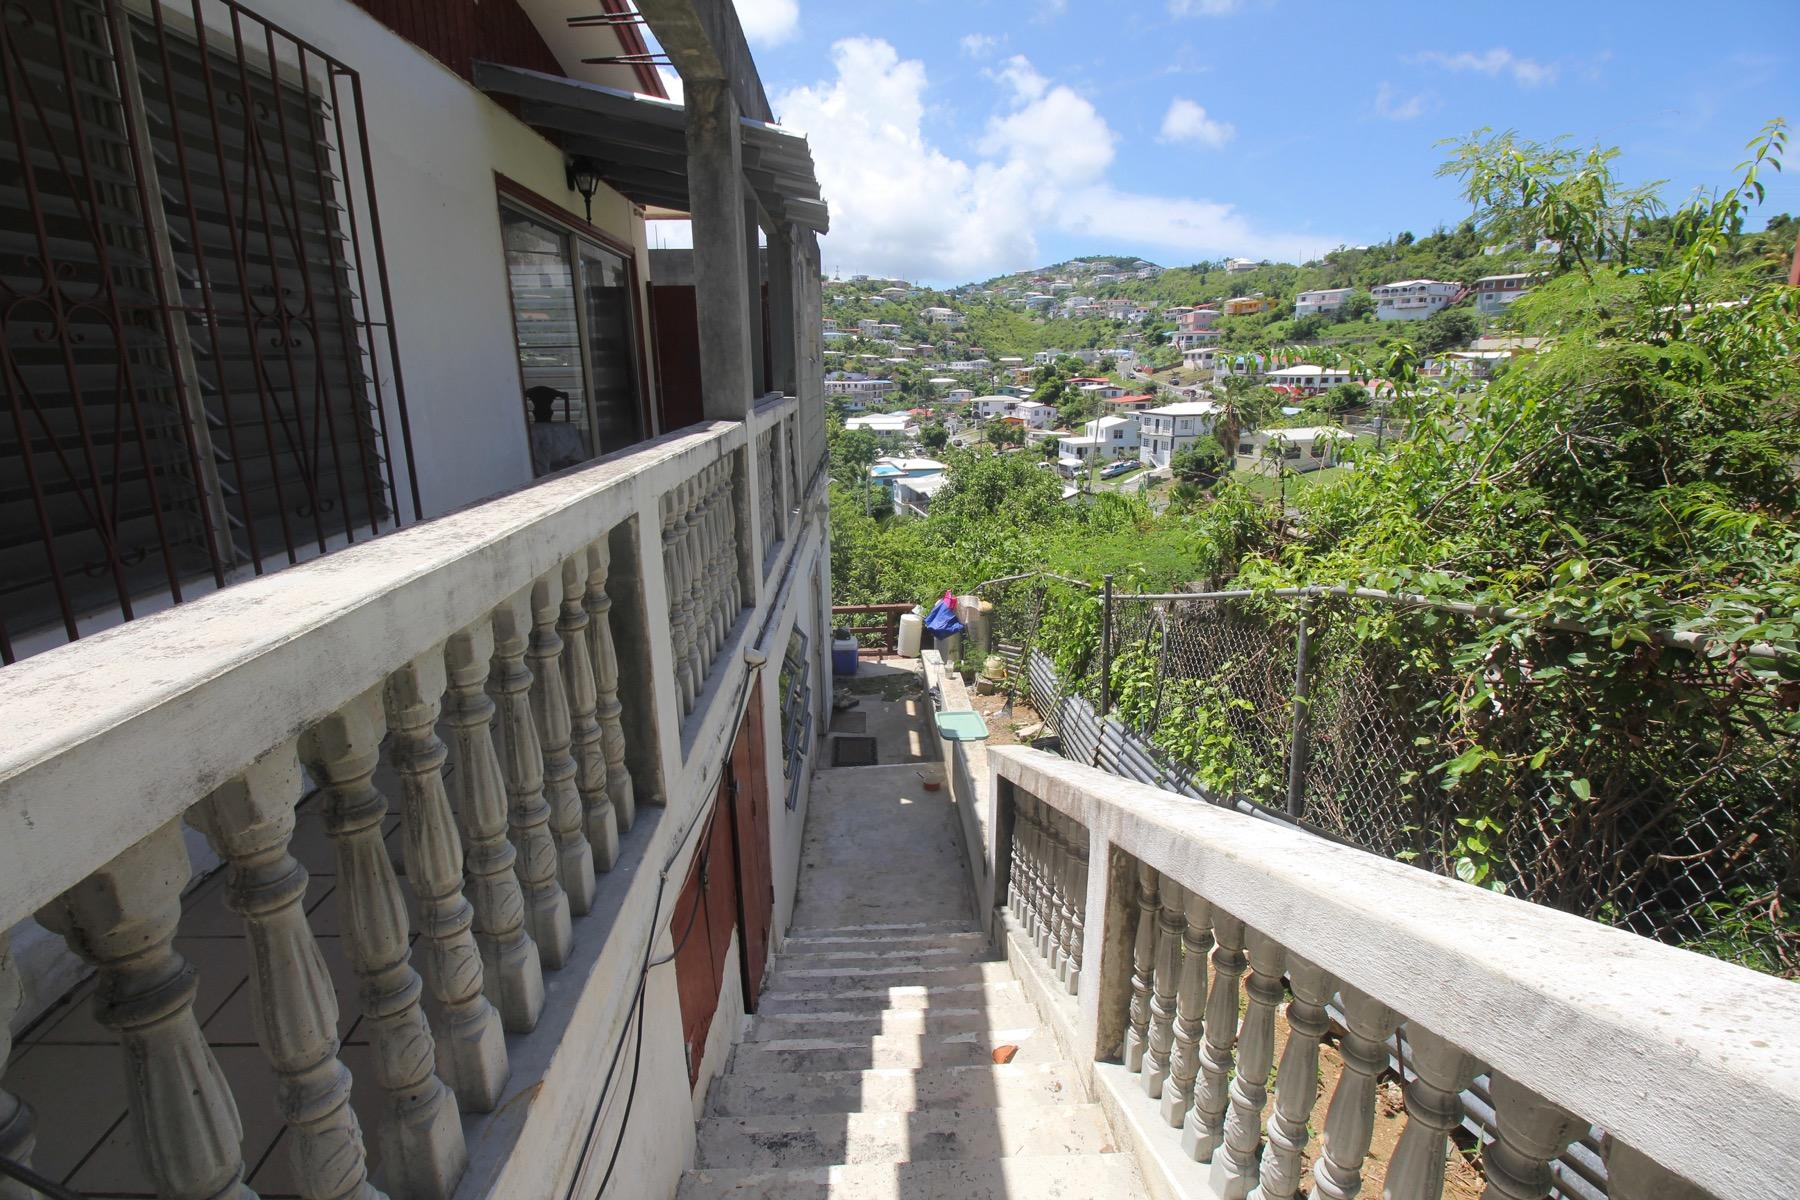 Walkway to downstairs Apartment